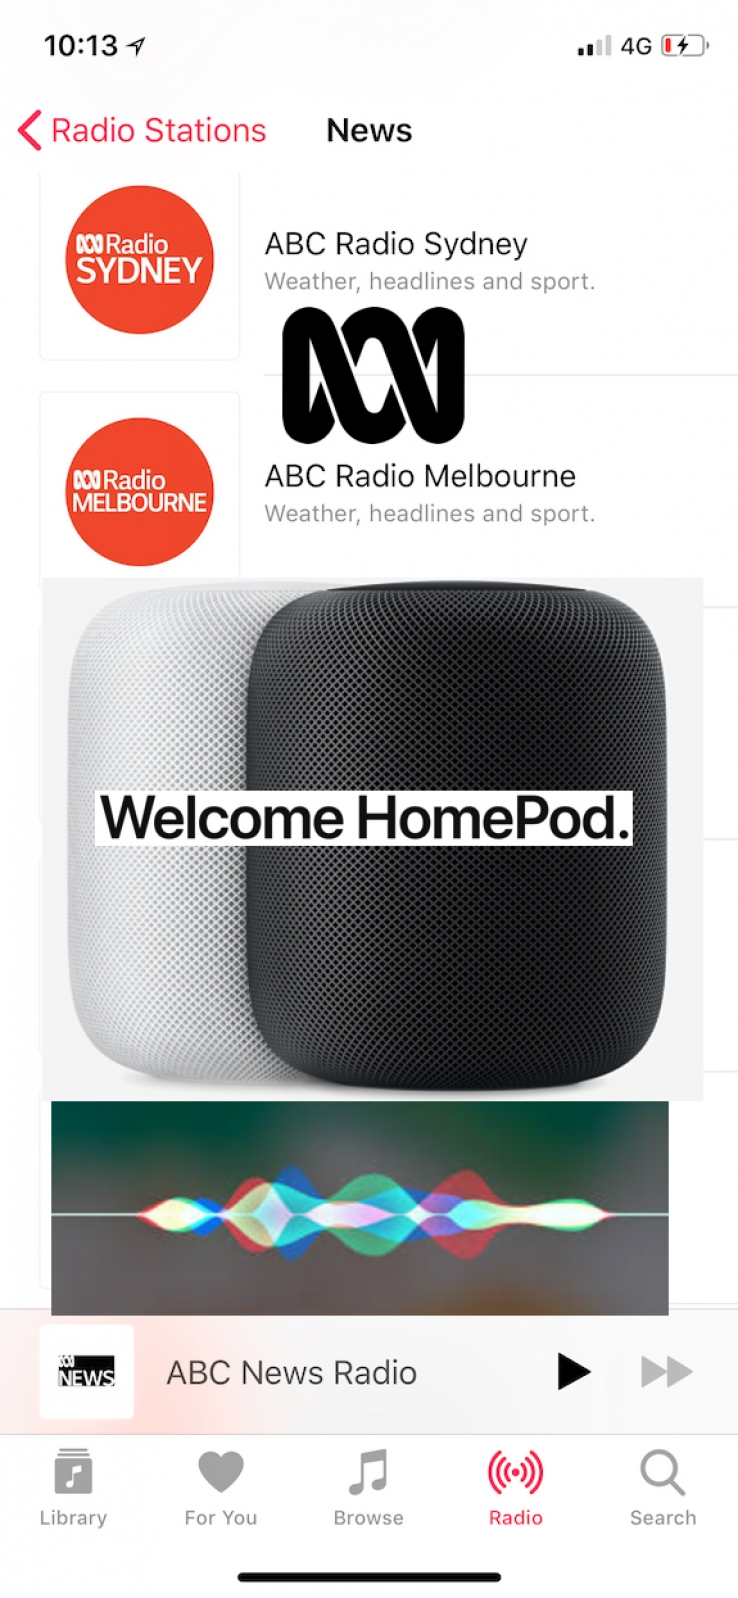 iTWire - ABC Australia radio stations come to Aussies using